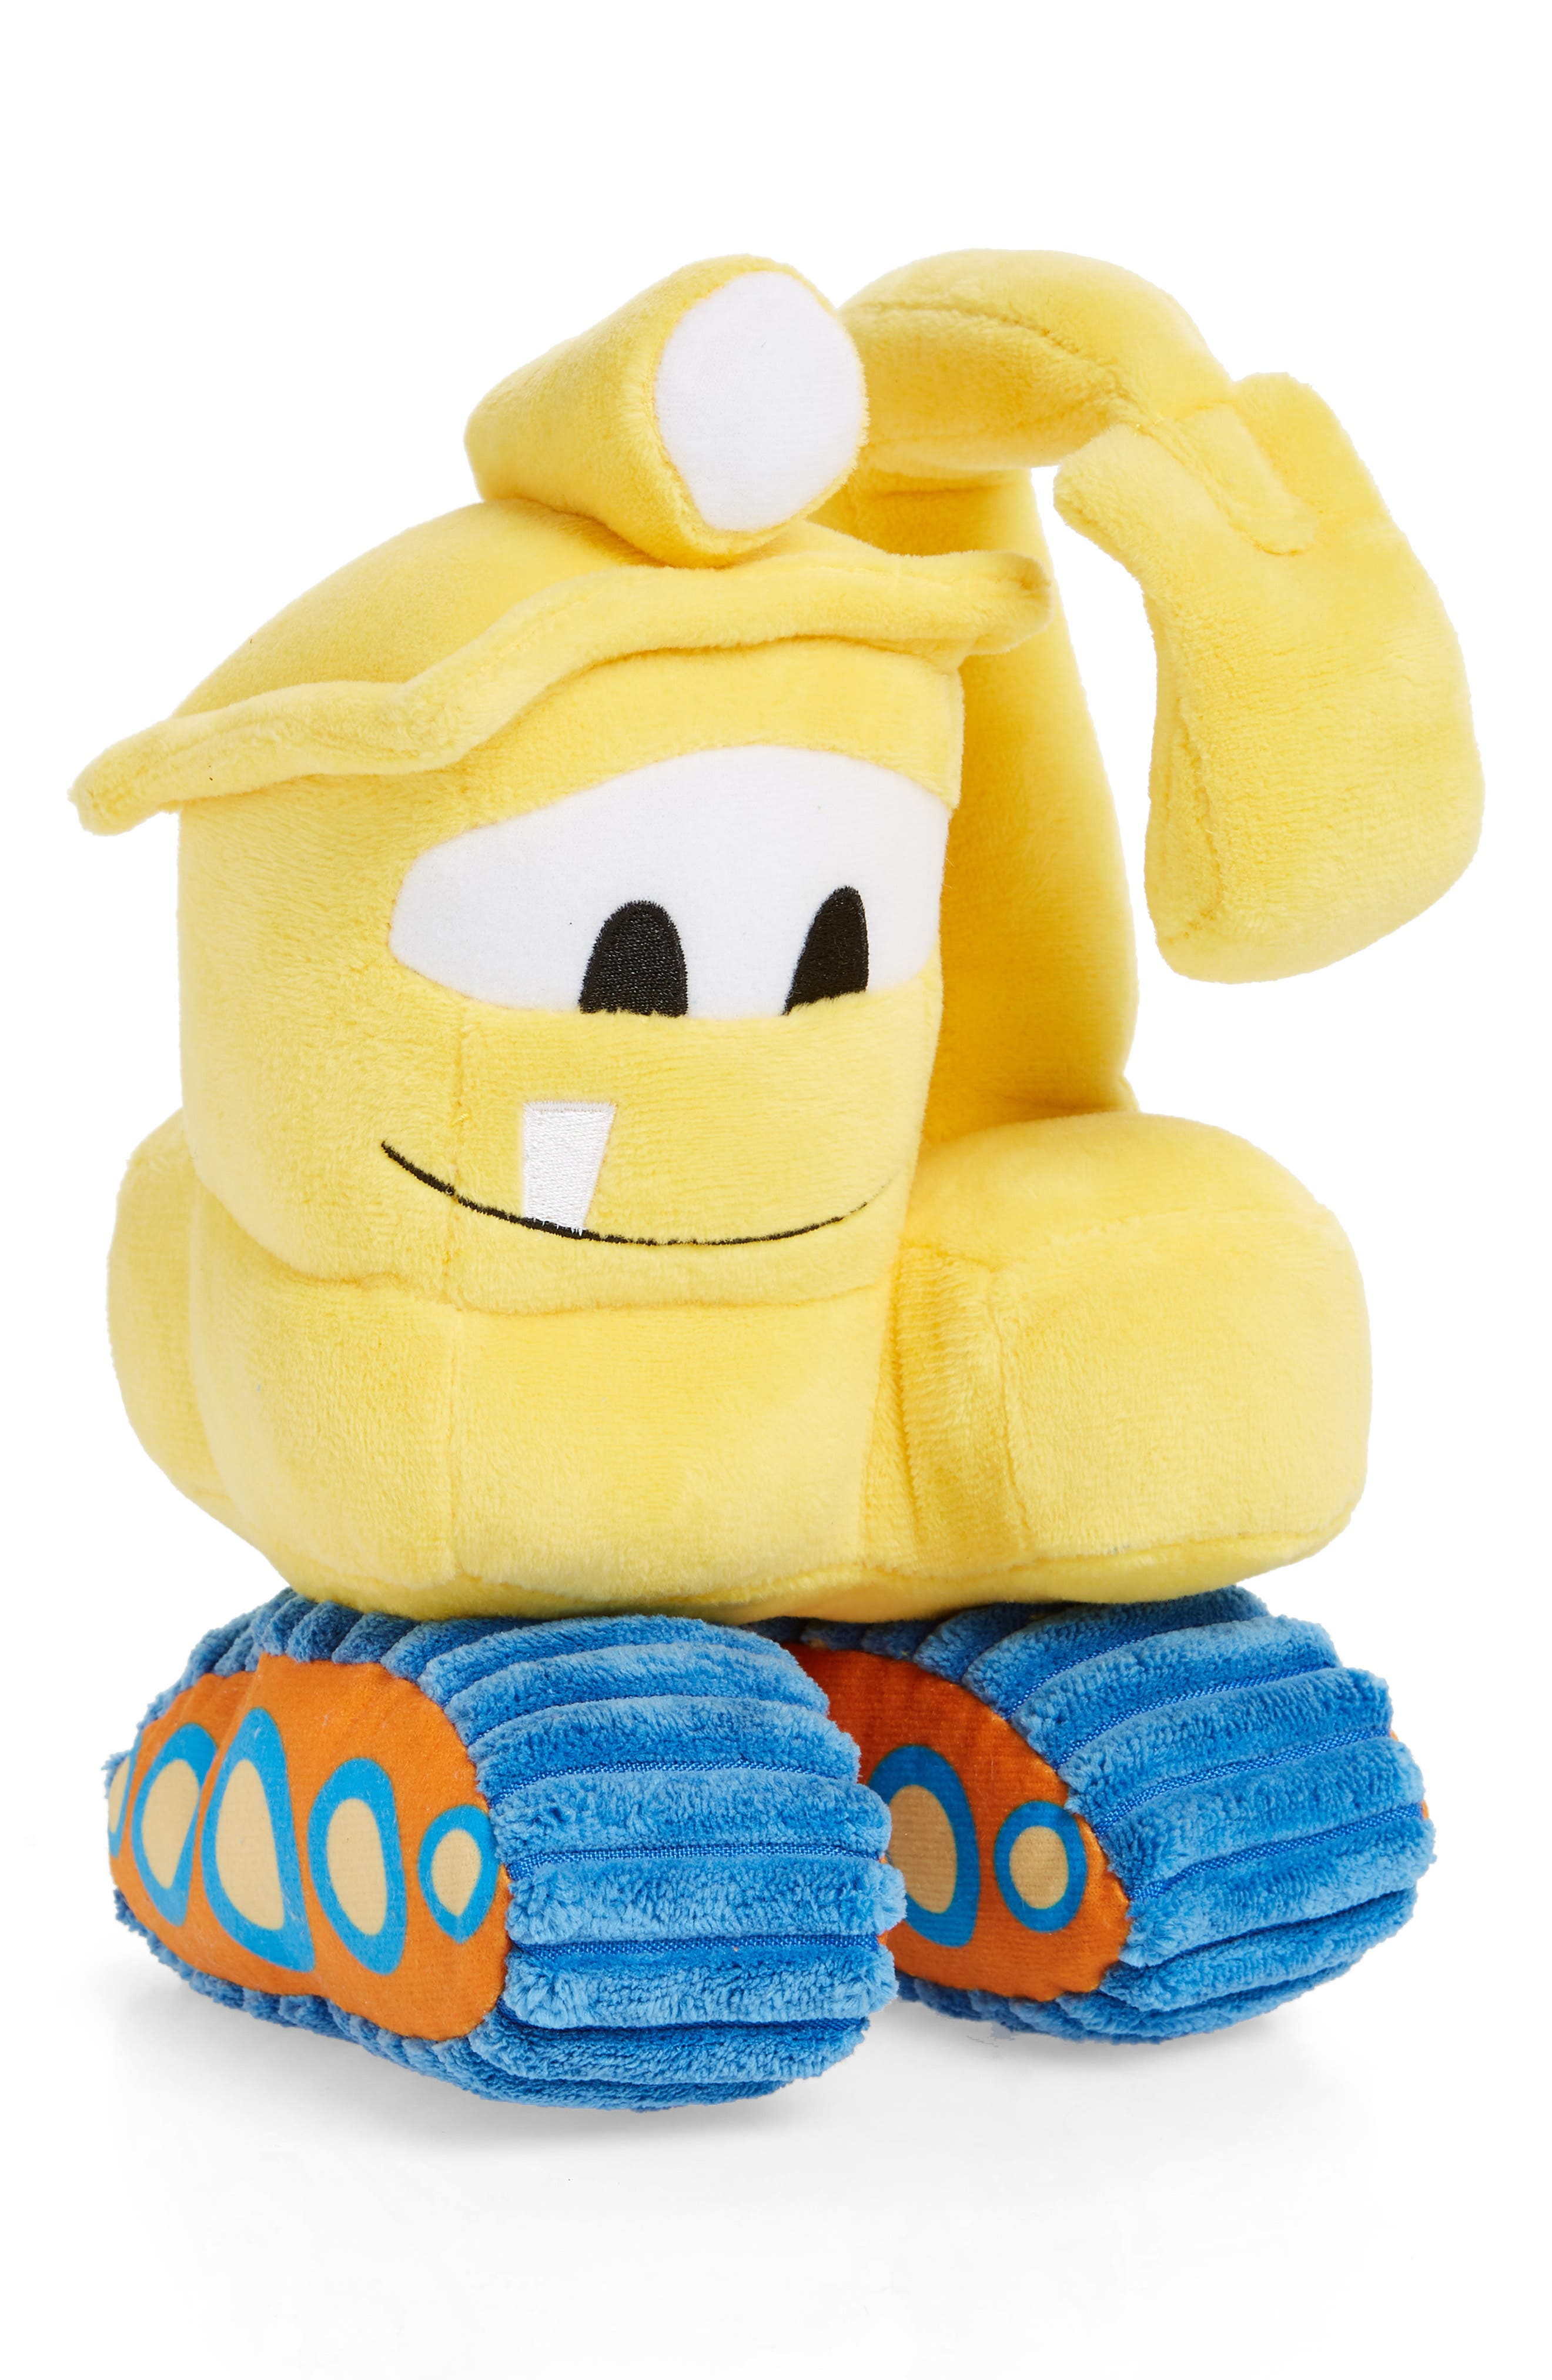 KIDS PREFERRED,                             Goodnight Goodnight, Construction Site Excavator Light-Up Plush Toy,                             Main thumbnail 1, color,                             700